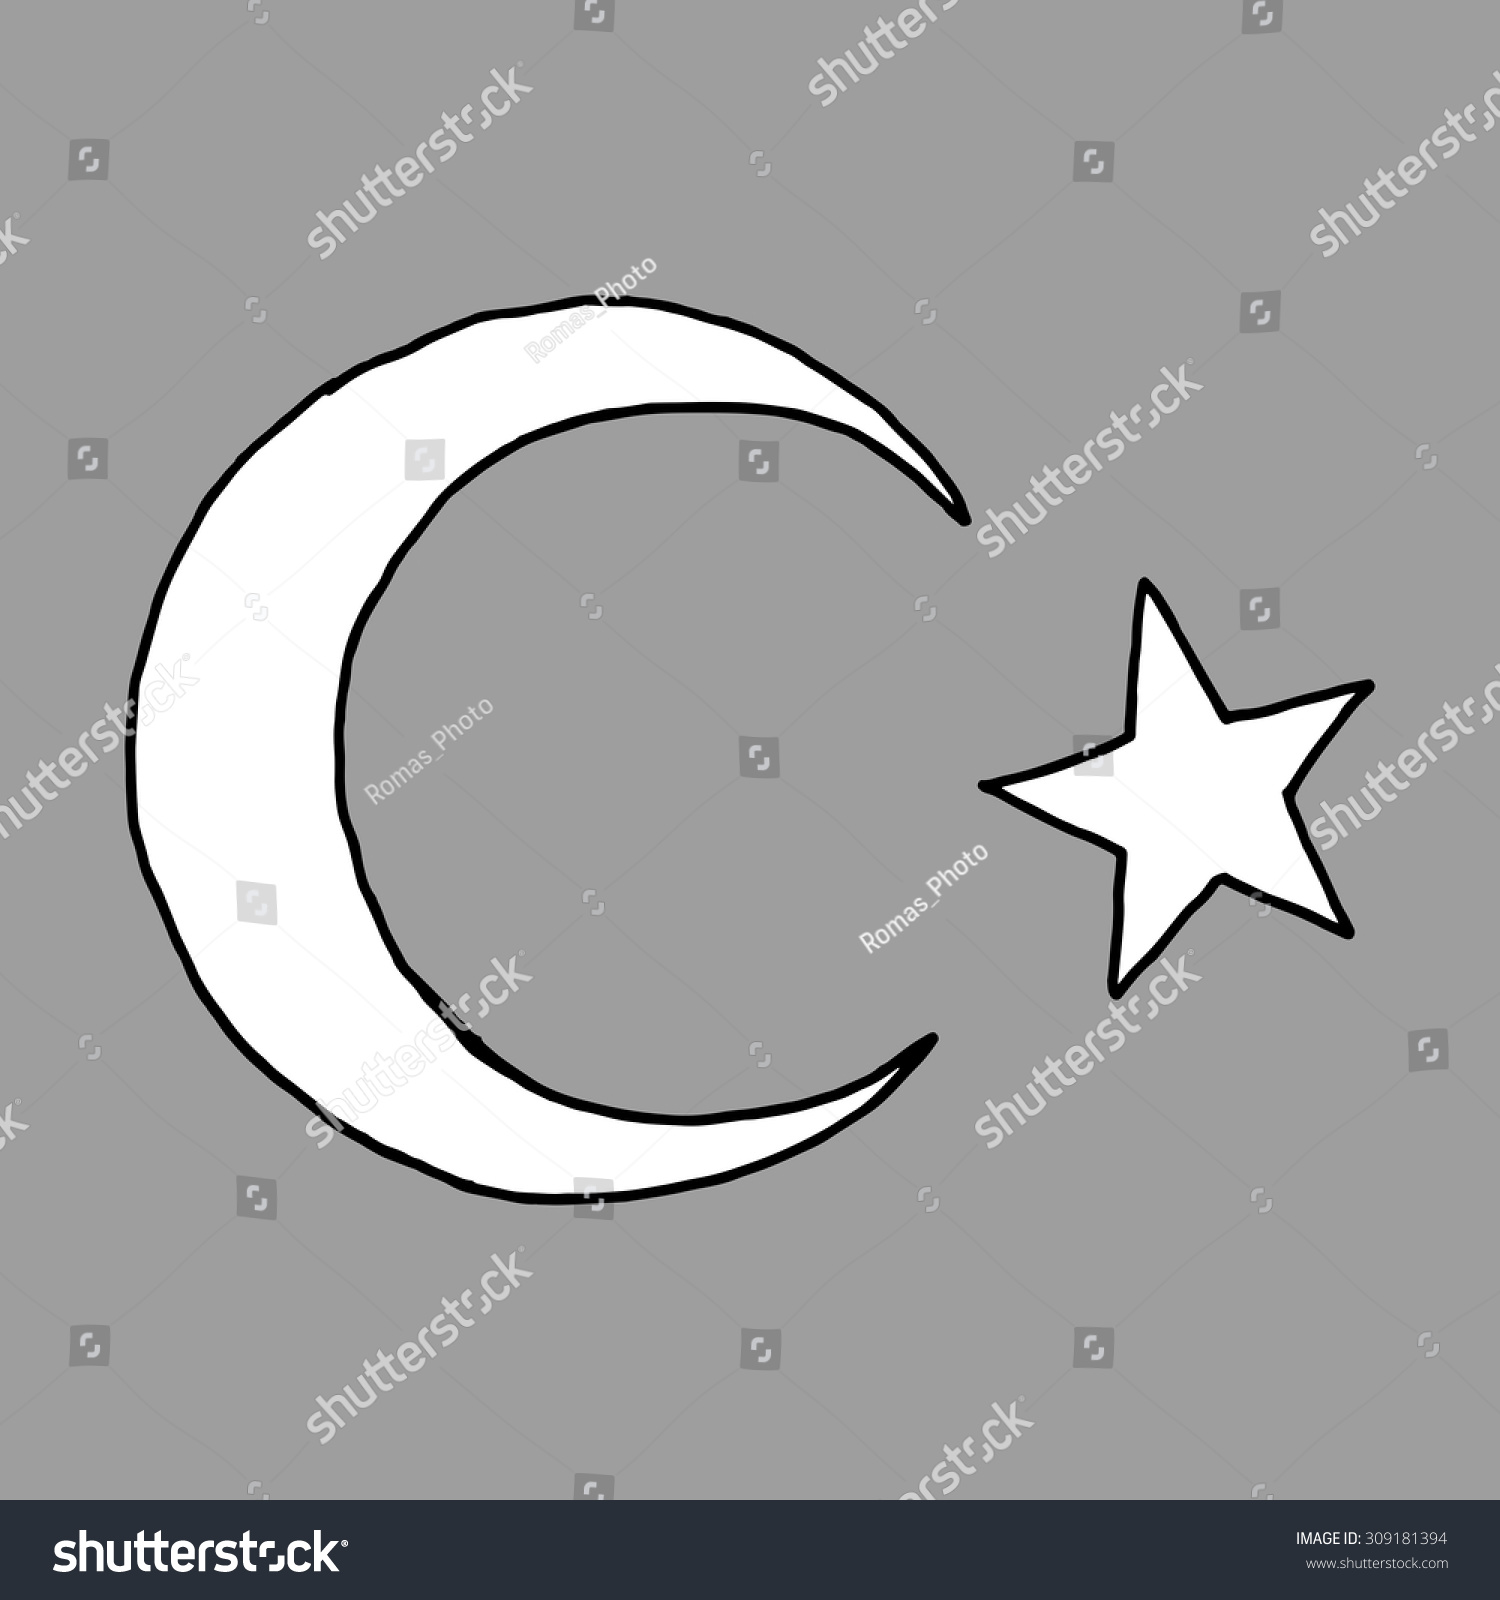 Crescent islamic symbol doodle style hand stock vector 309181394 crescent islamic symbol doodle style hand drawn image of moon with star biocorpaavc Choice Image